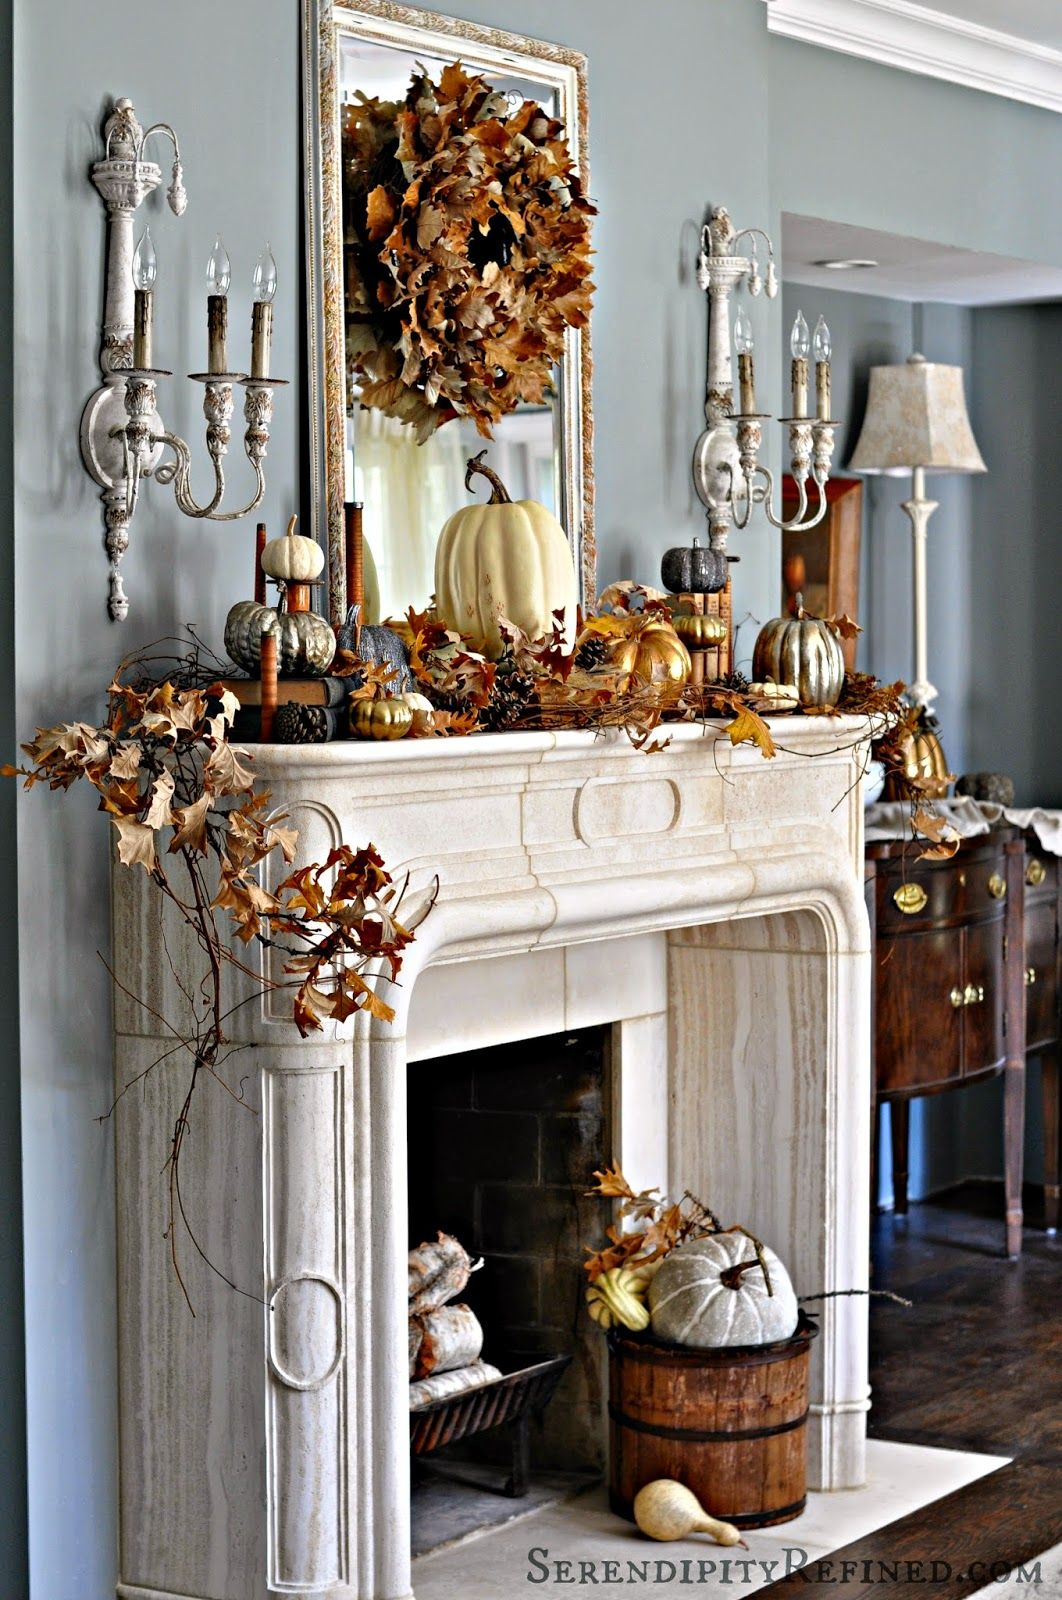 Serendipity Refined French Country Fall Mantel Neutrals